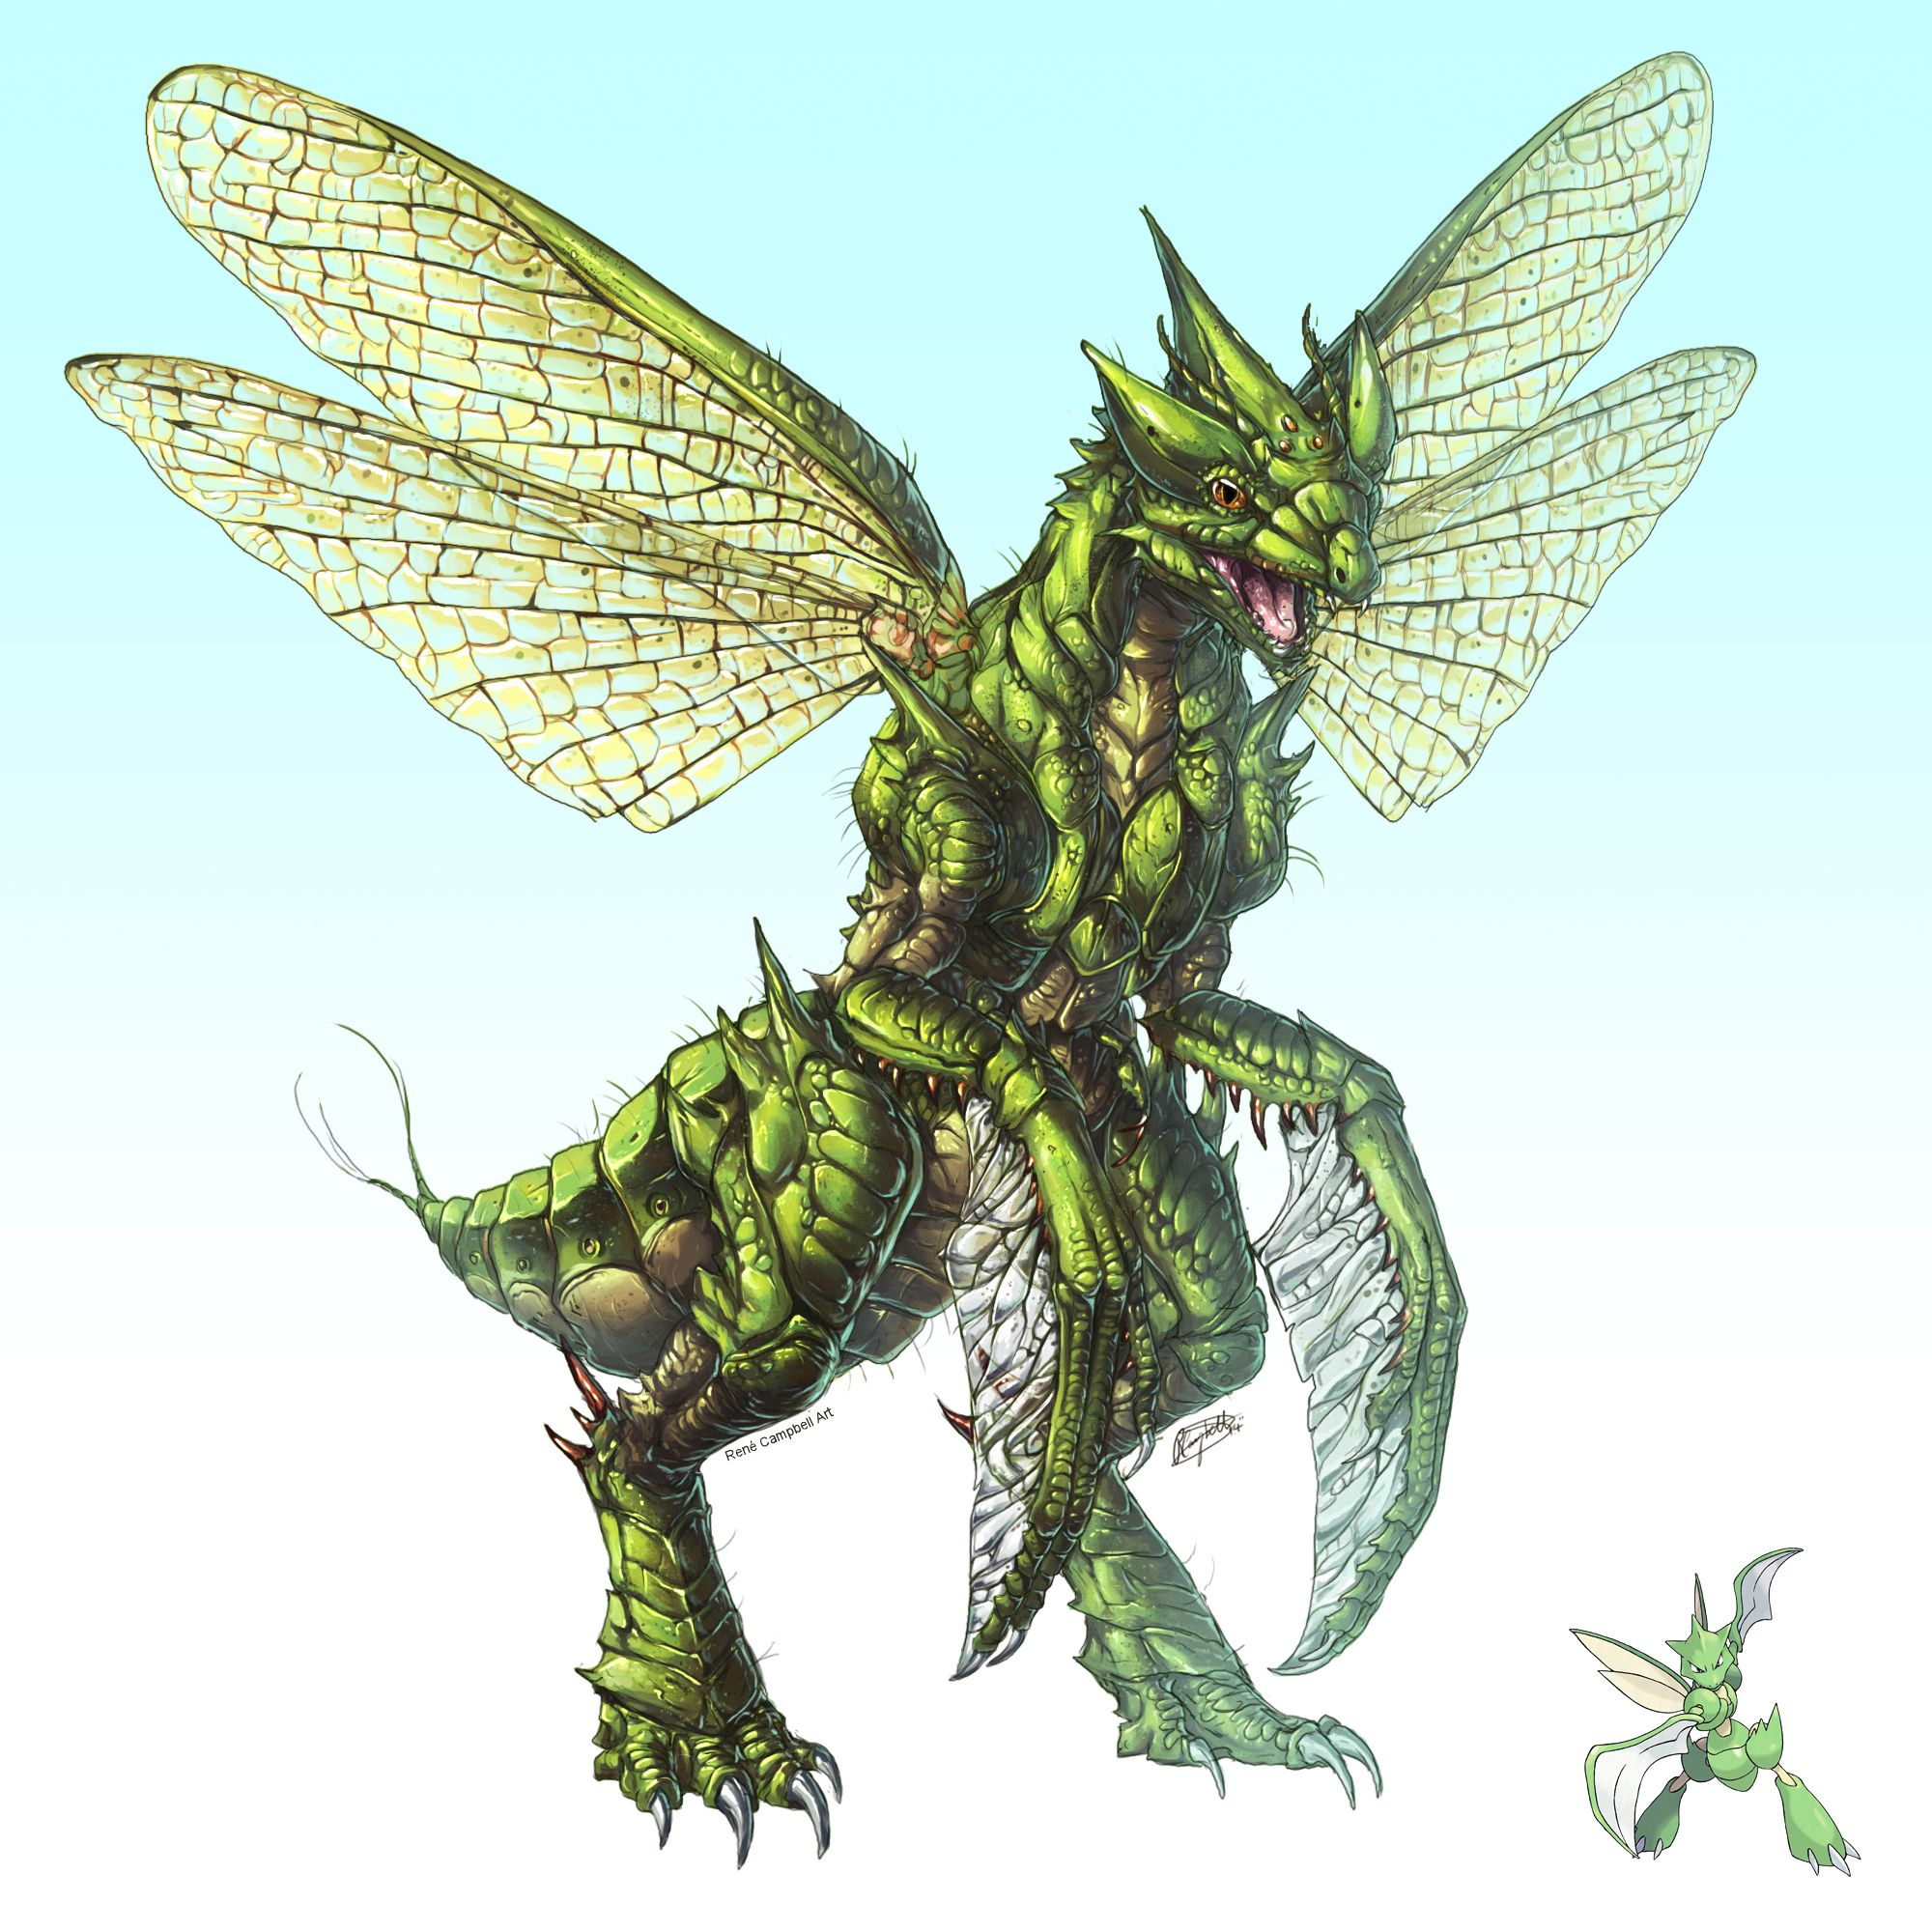 Realistic Pokemon Scyther By ReneCampbellArtdeviantartcom On - This artist transformed pokmon characters into nightmare fuel